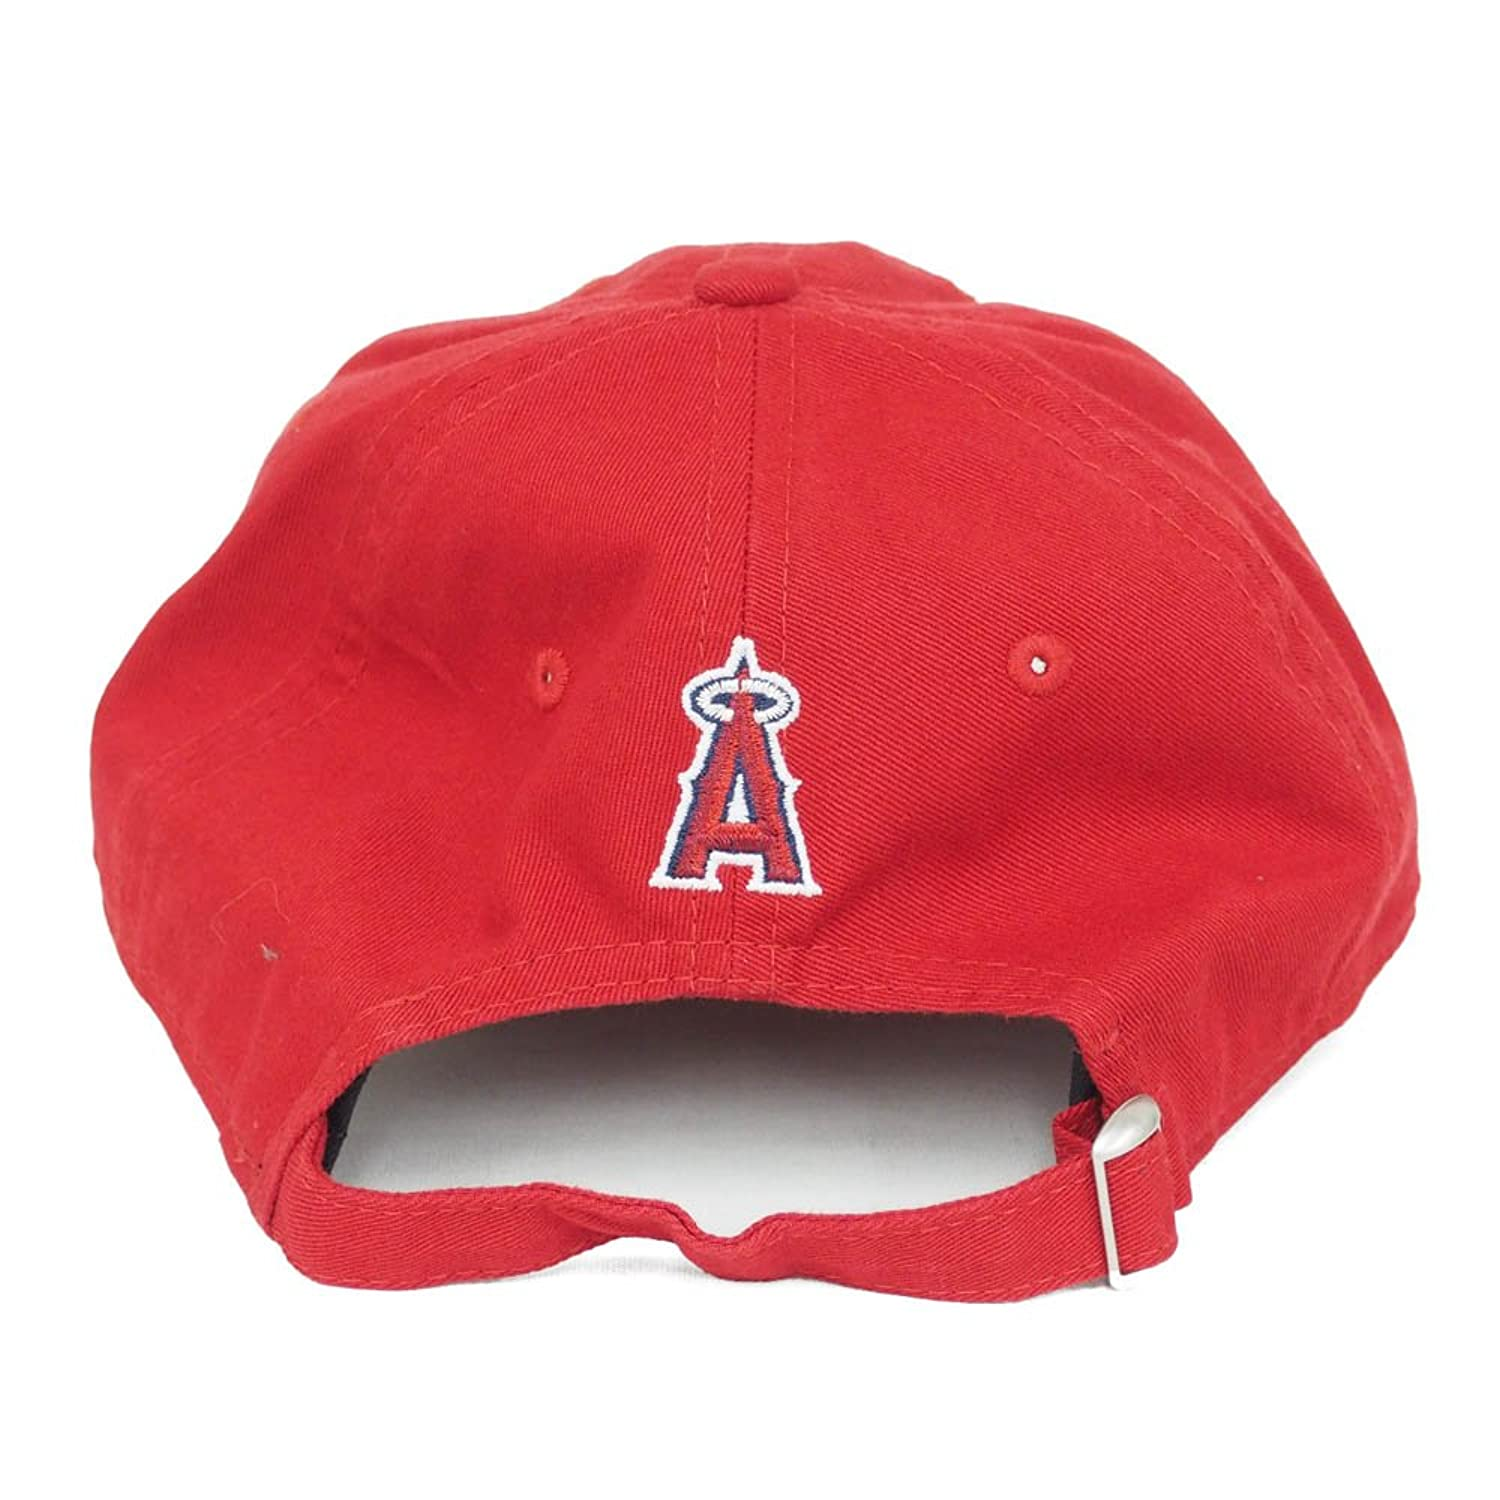 48a481ffb03a73 ... greece new era authentic angels shohei ohtani 9twenty adjustable hat  red at amazon mens clothing store